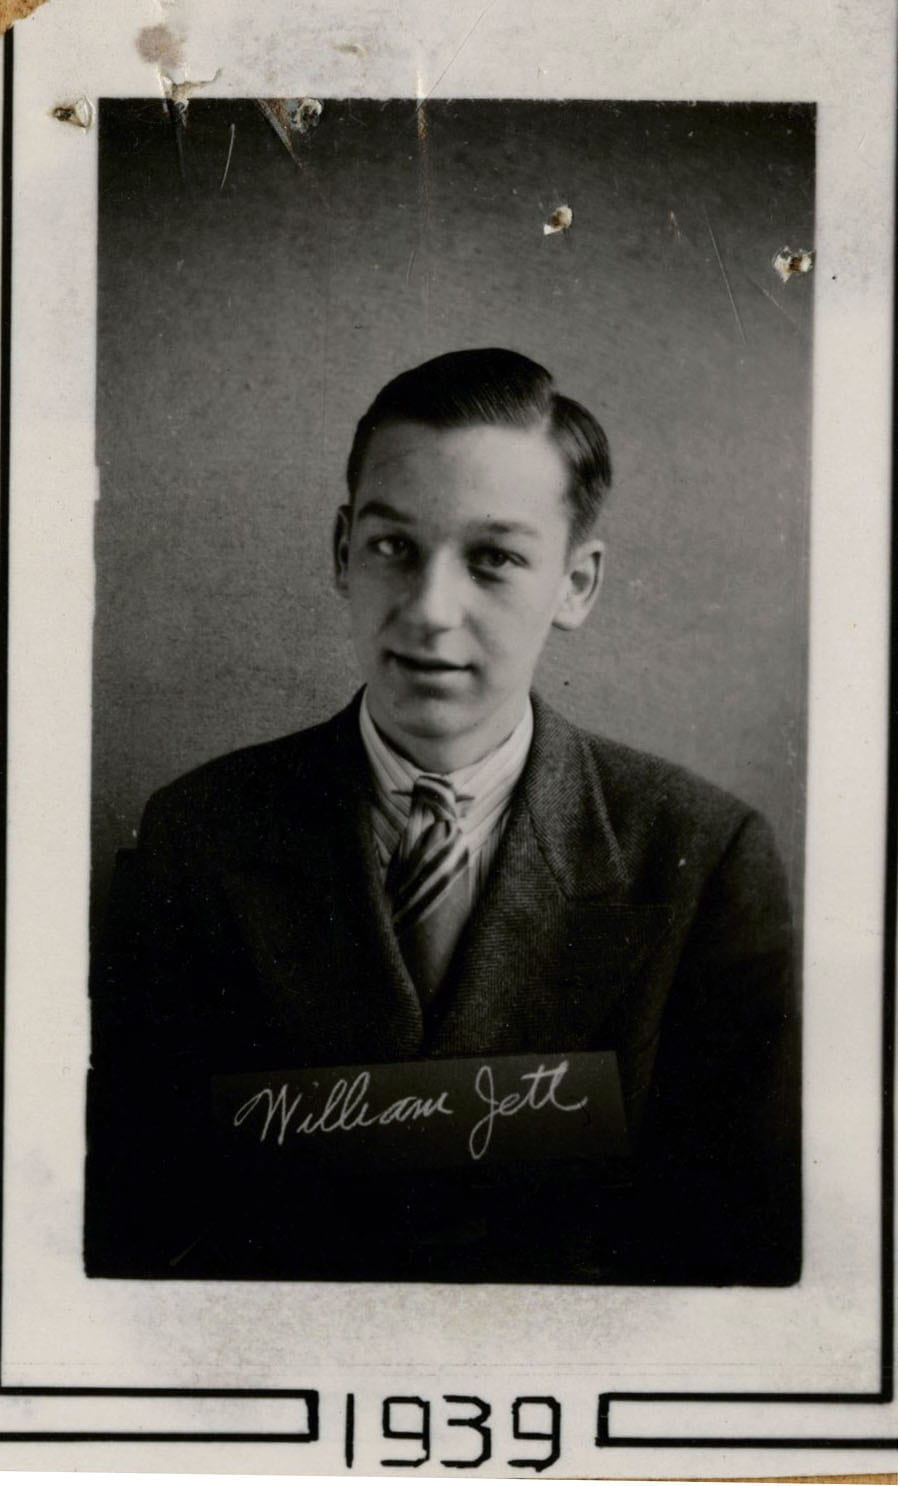 Photo of William Jett with his signature and the year 1939.